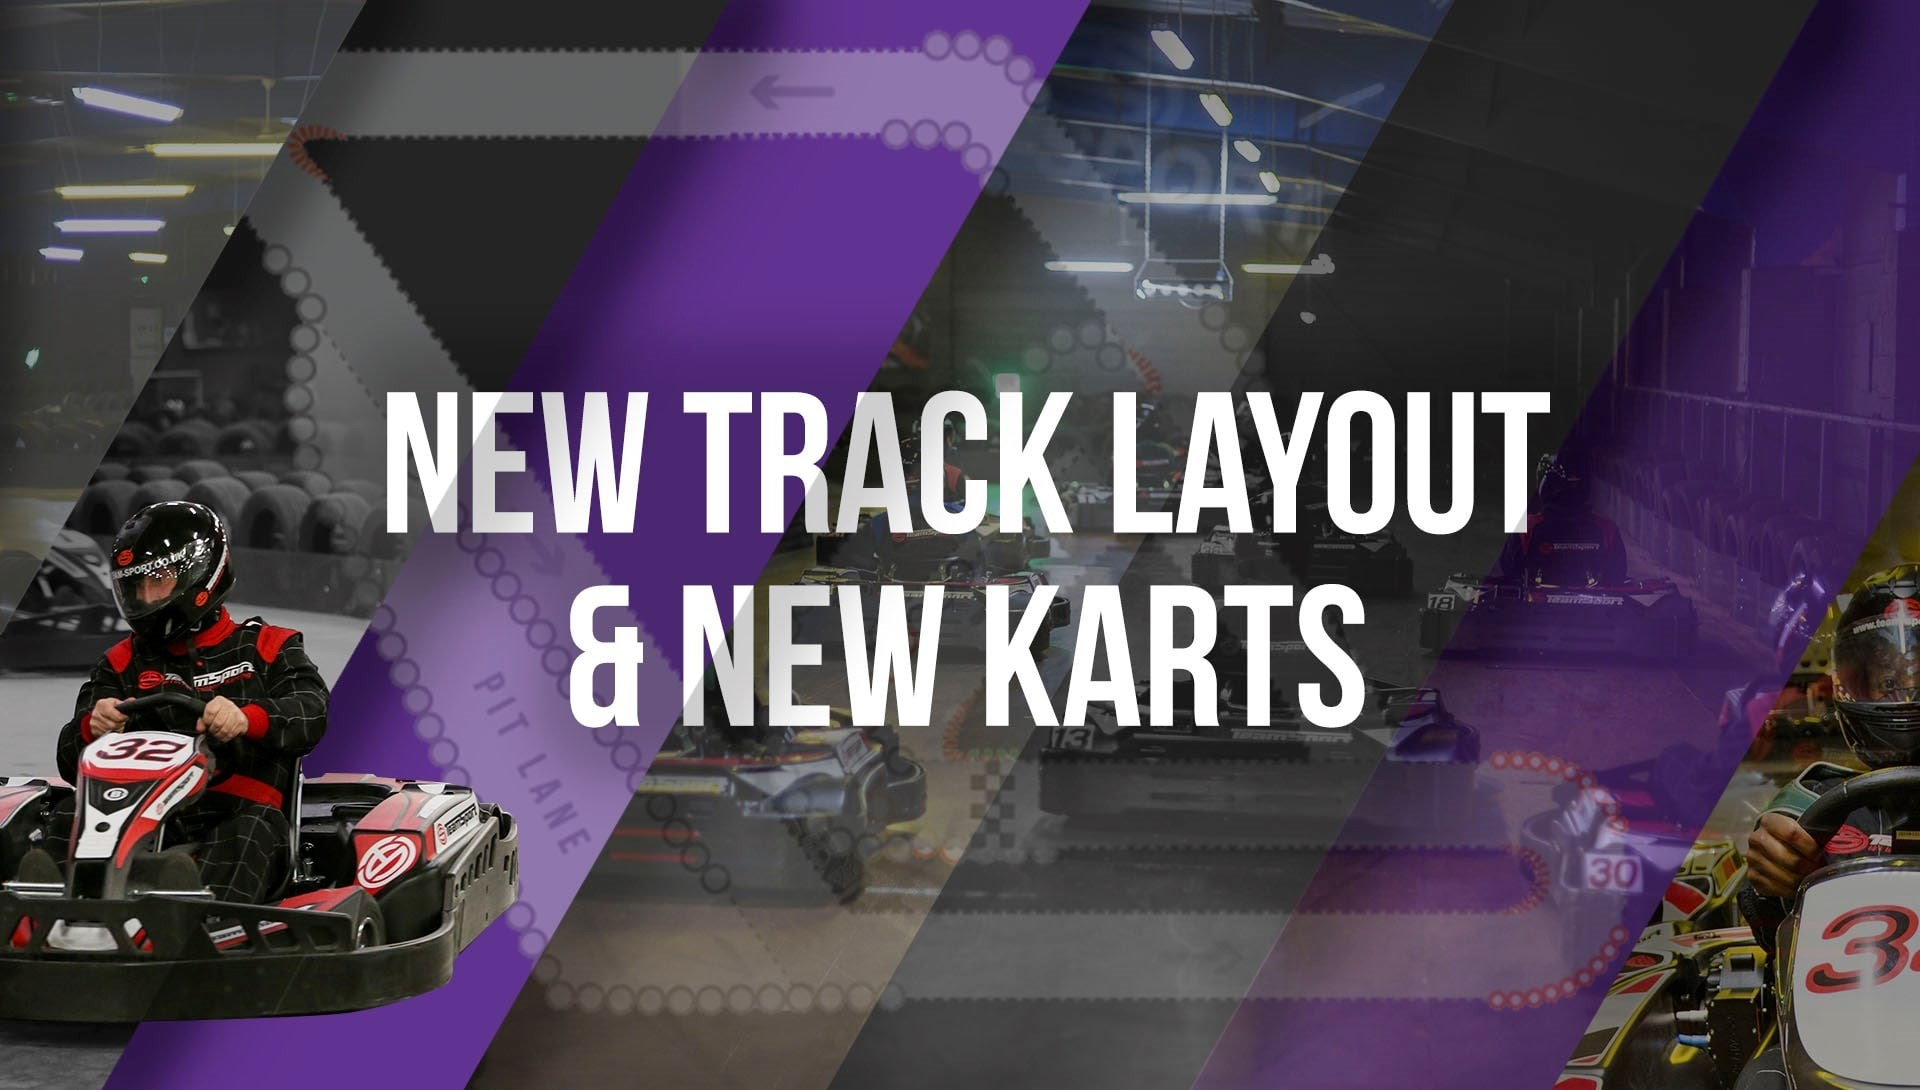 TeamSport_Go_Karting_New_Track_Layout_New_Karts_1920x1090-min.jpg